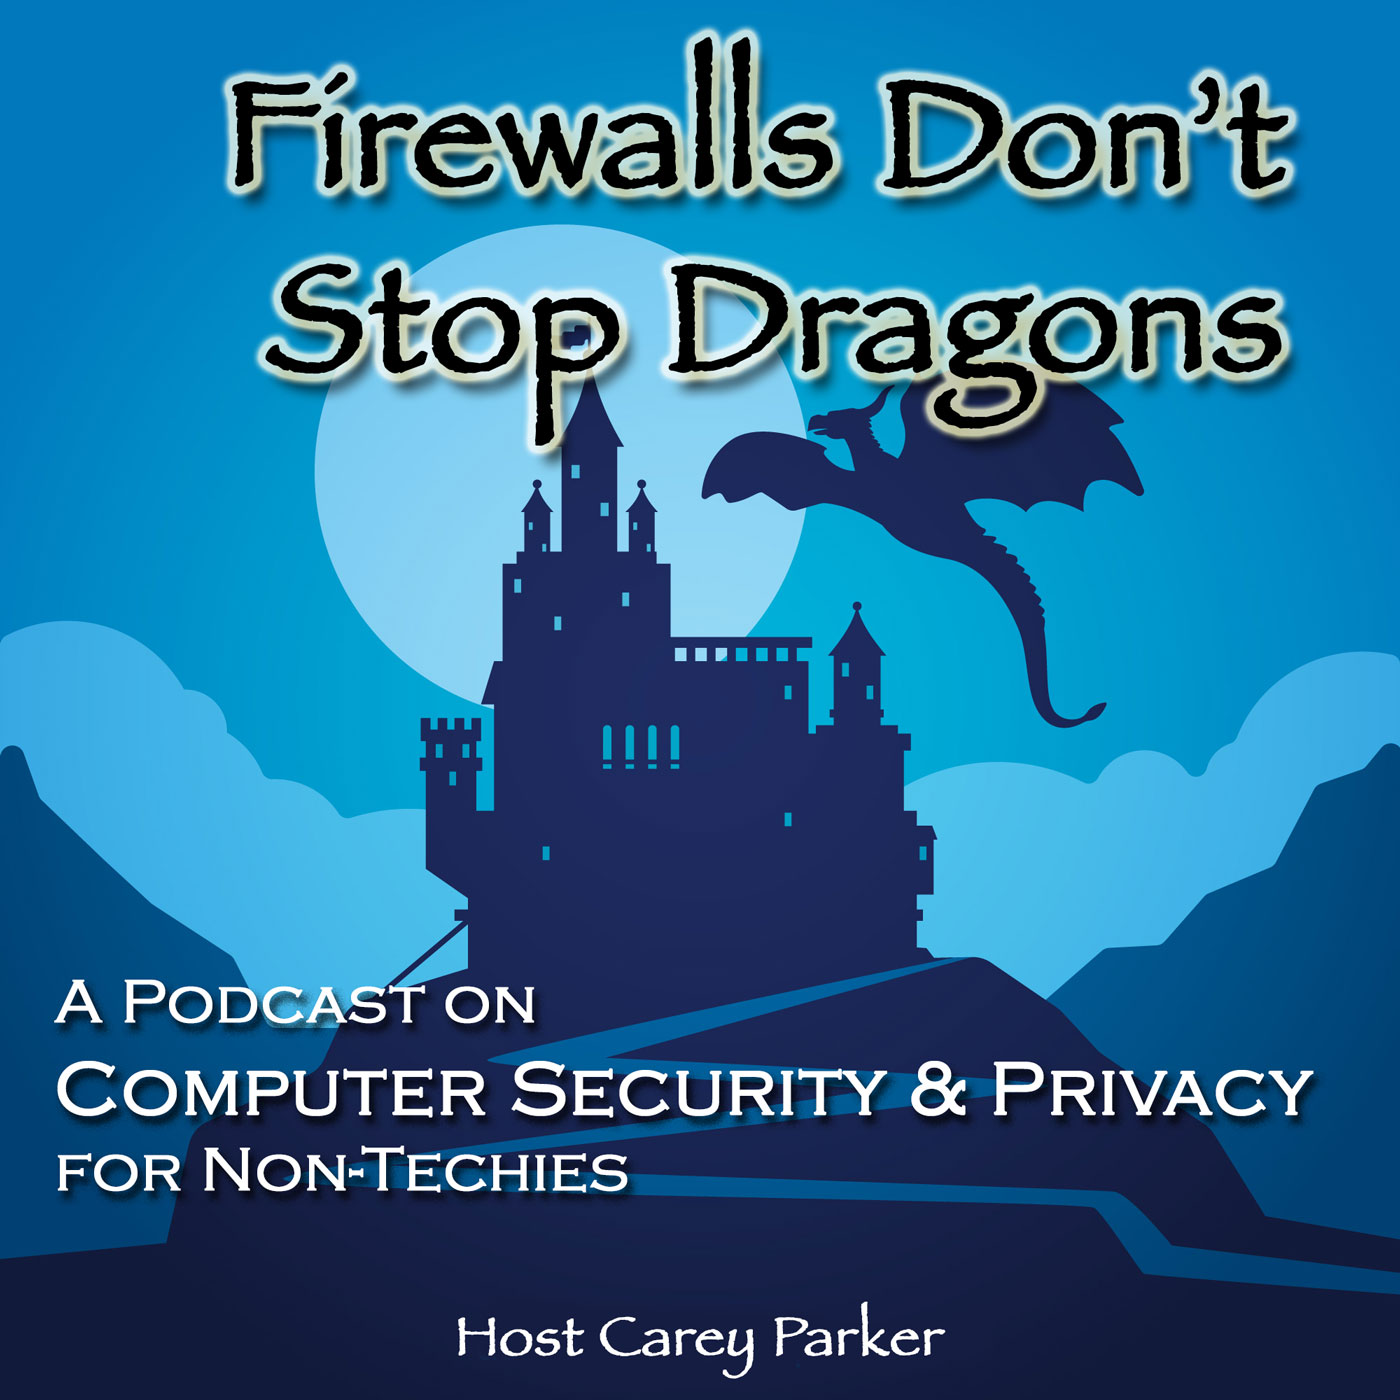 Firewalls Don't Stop Dragons Podcast